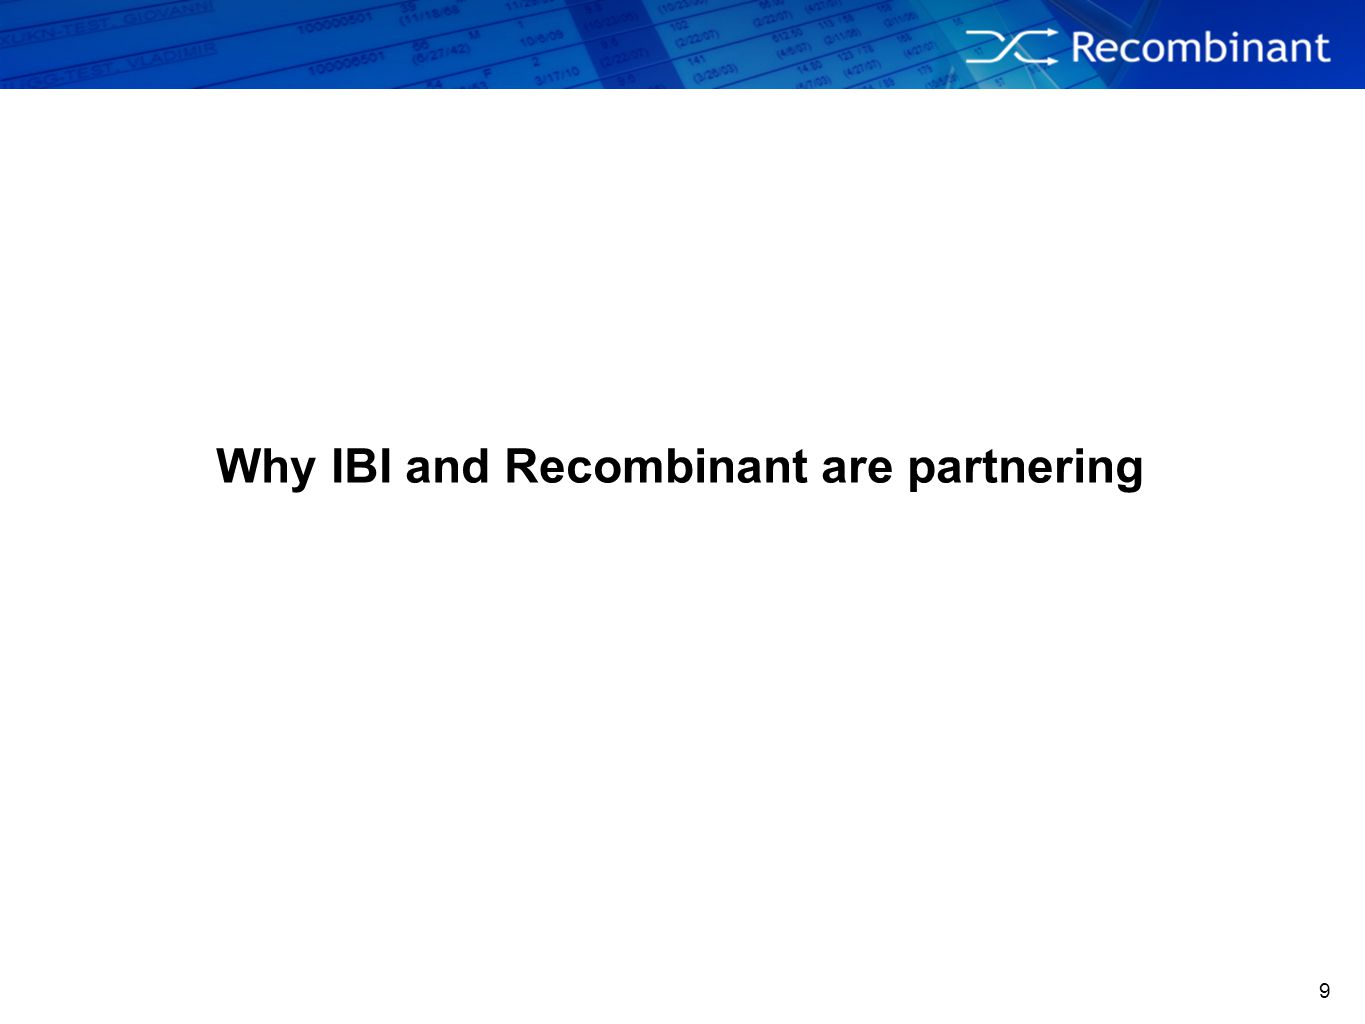 Why IBI and Recombinant are partnering